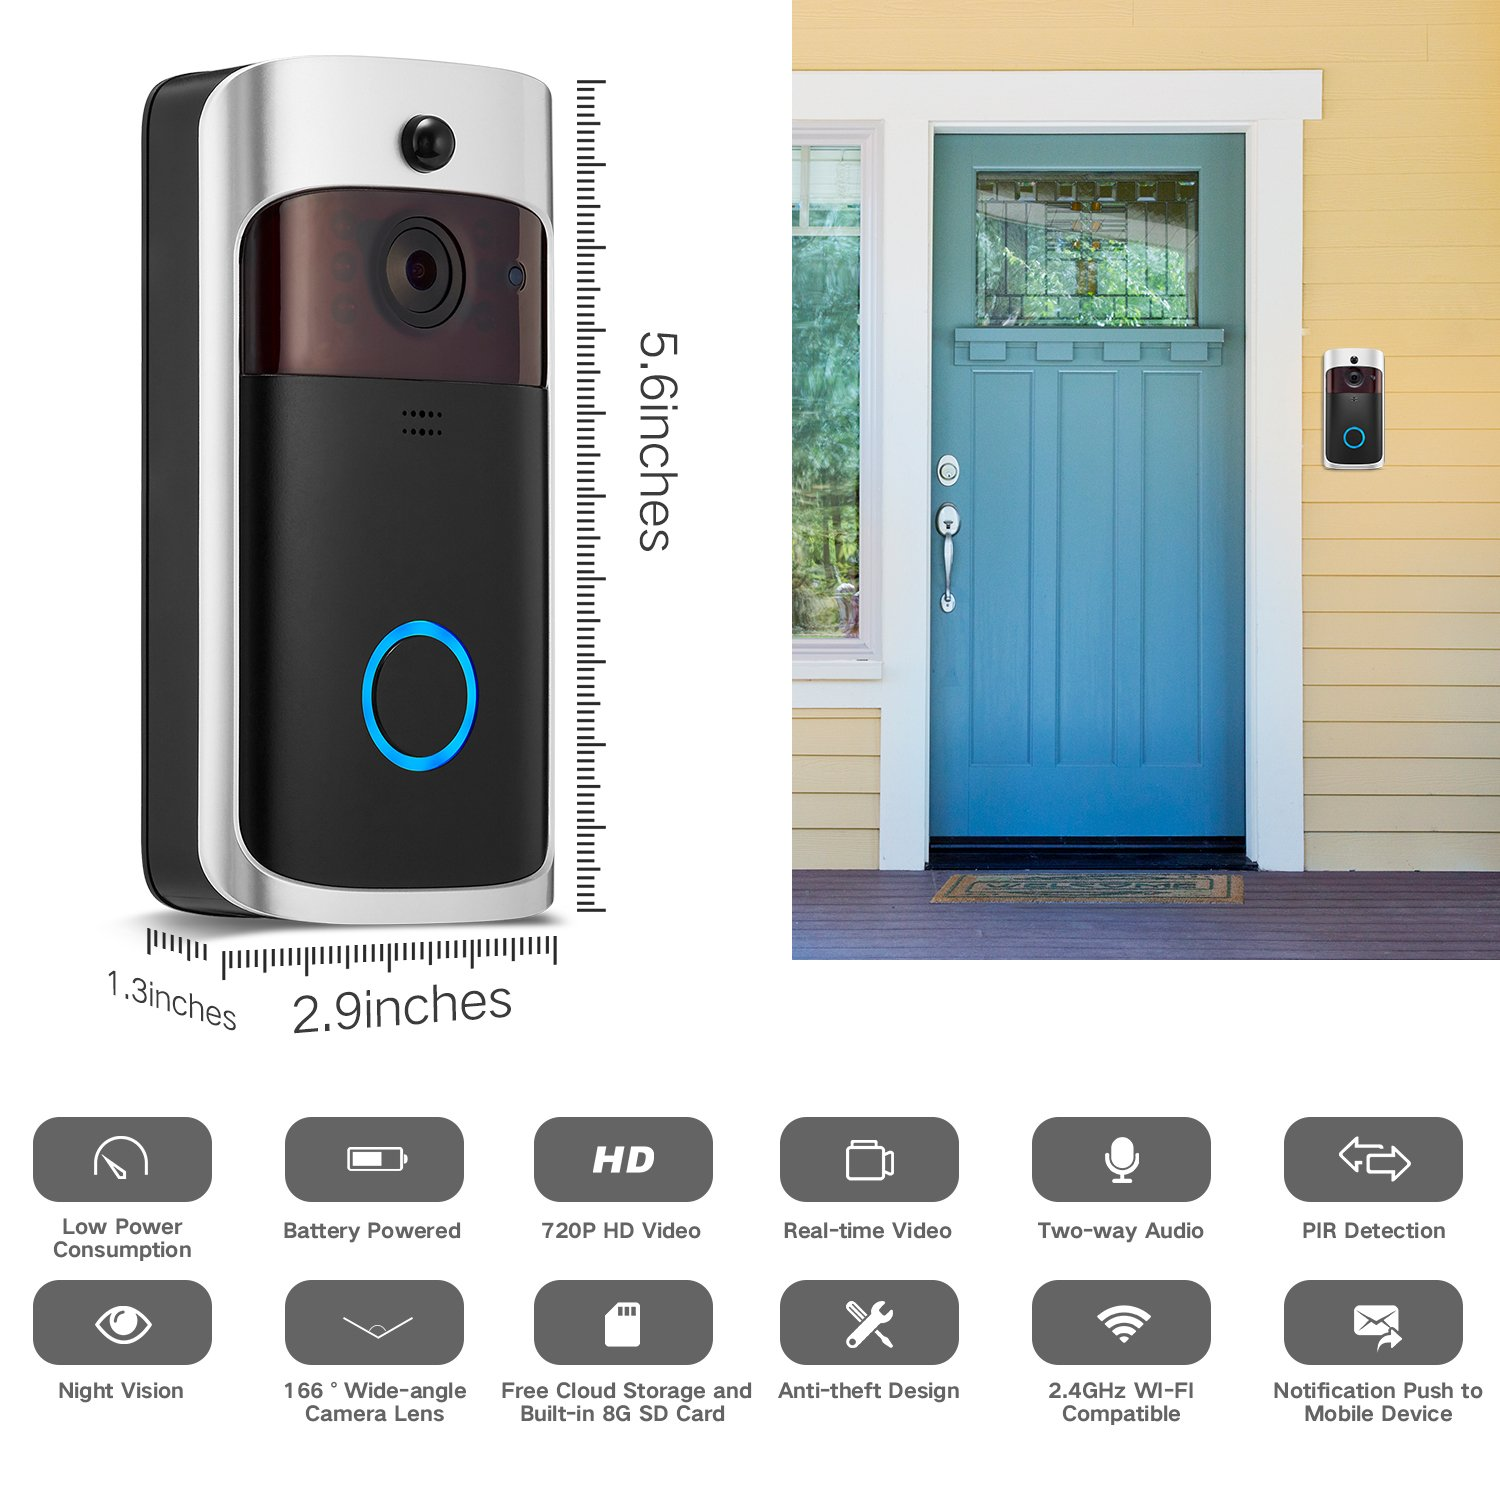 GJT Smart Video Doorbell Wireless Home WIFI Security Camera With Indoor Chime, 8G SD Card, Free Cloud Service, 2 Batteries, 2-Way Talk, Night Vision, PIR Motion Detection, APP Control for IOS Android by GJT (Image #2)